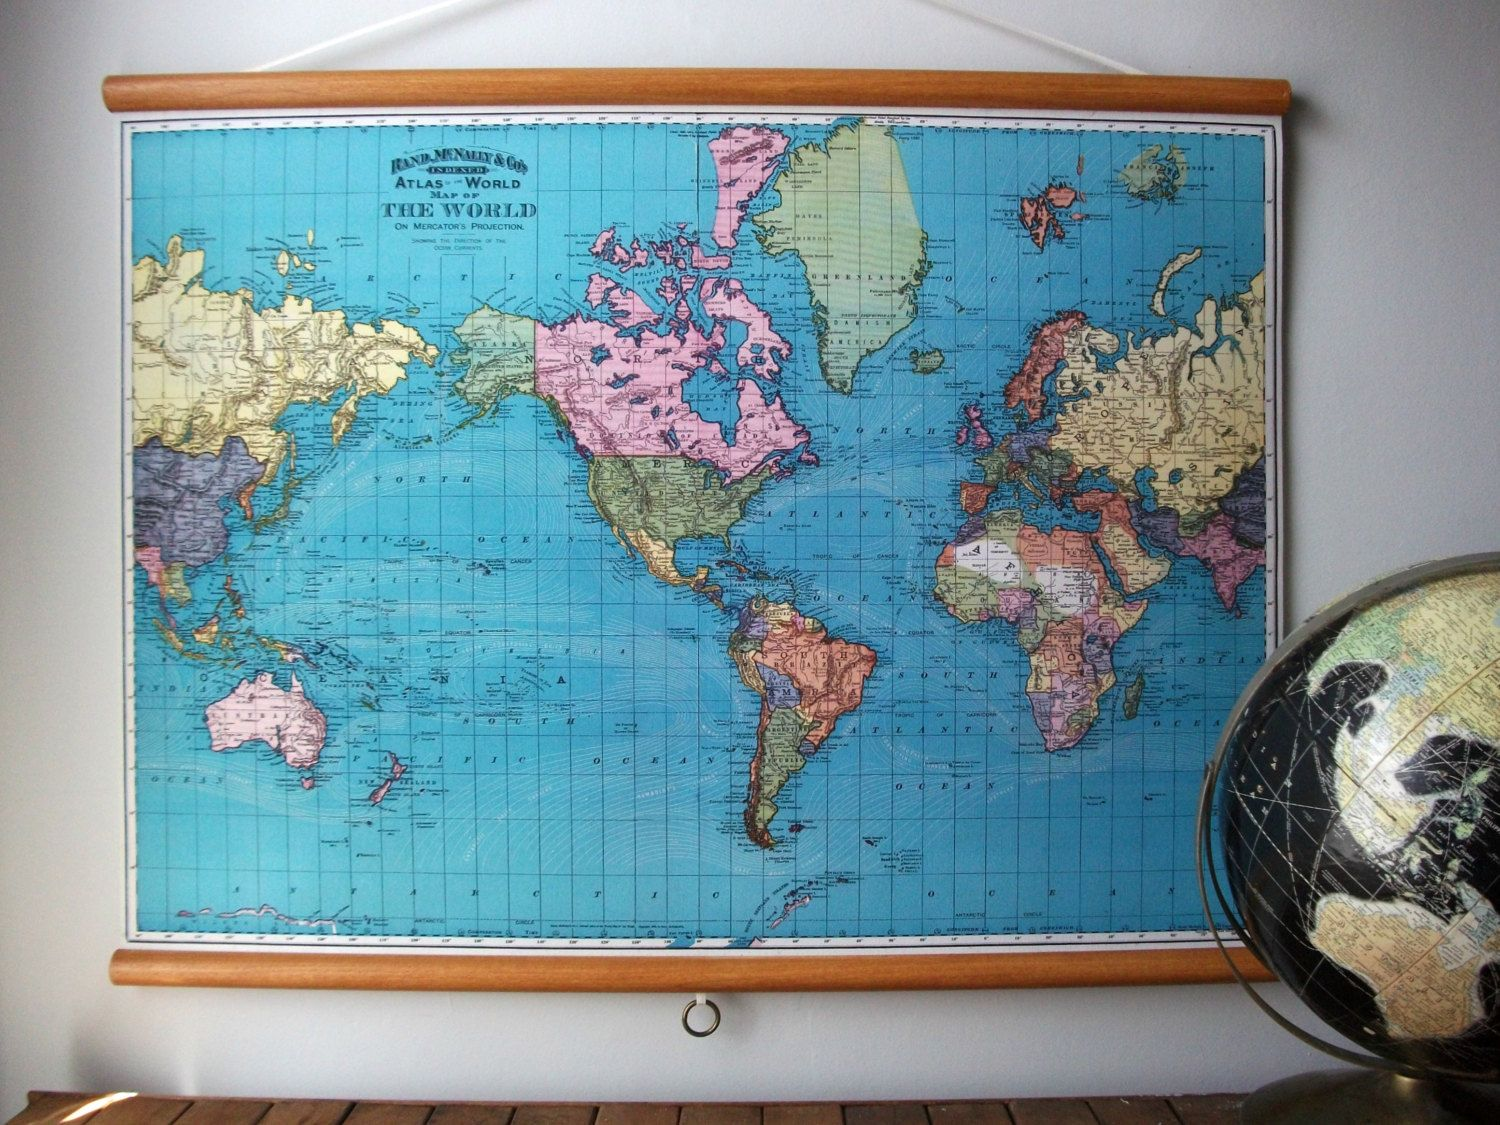 World map 1897 vintage pull down reproduction canvas fabric or large pull down map educational chart vintage style wall hanging canvas poster print with stained wood gumiabroncs Gallery